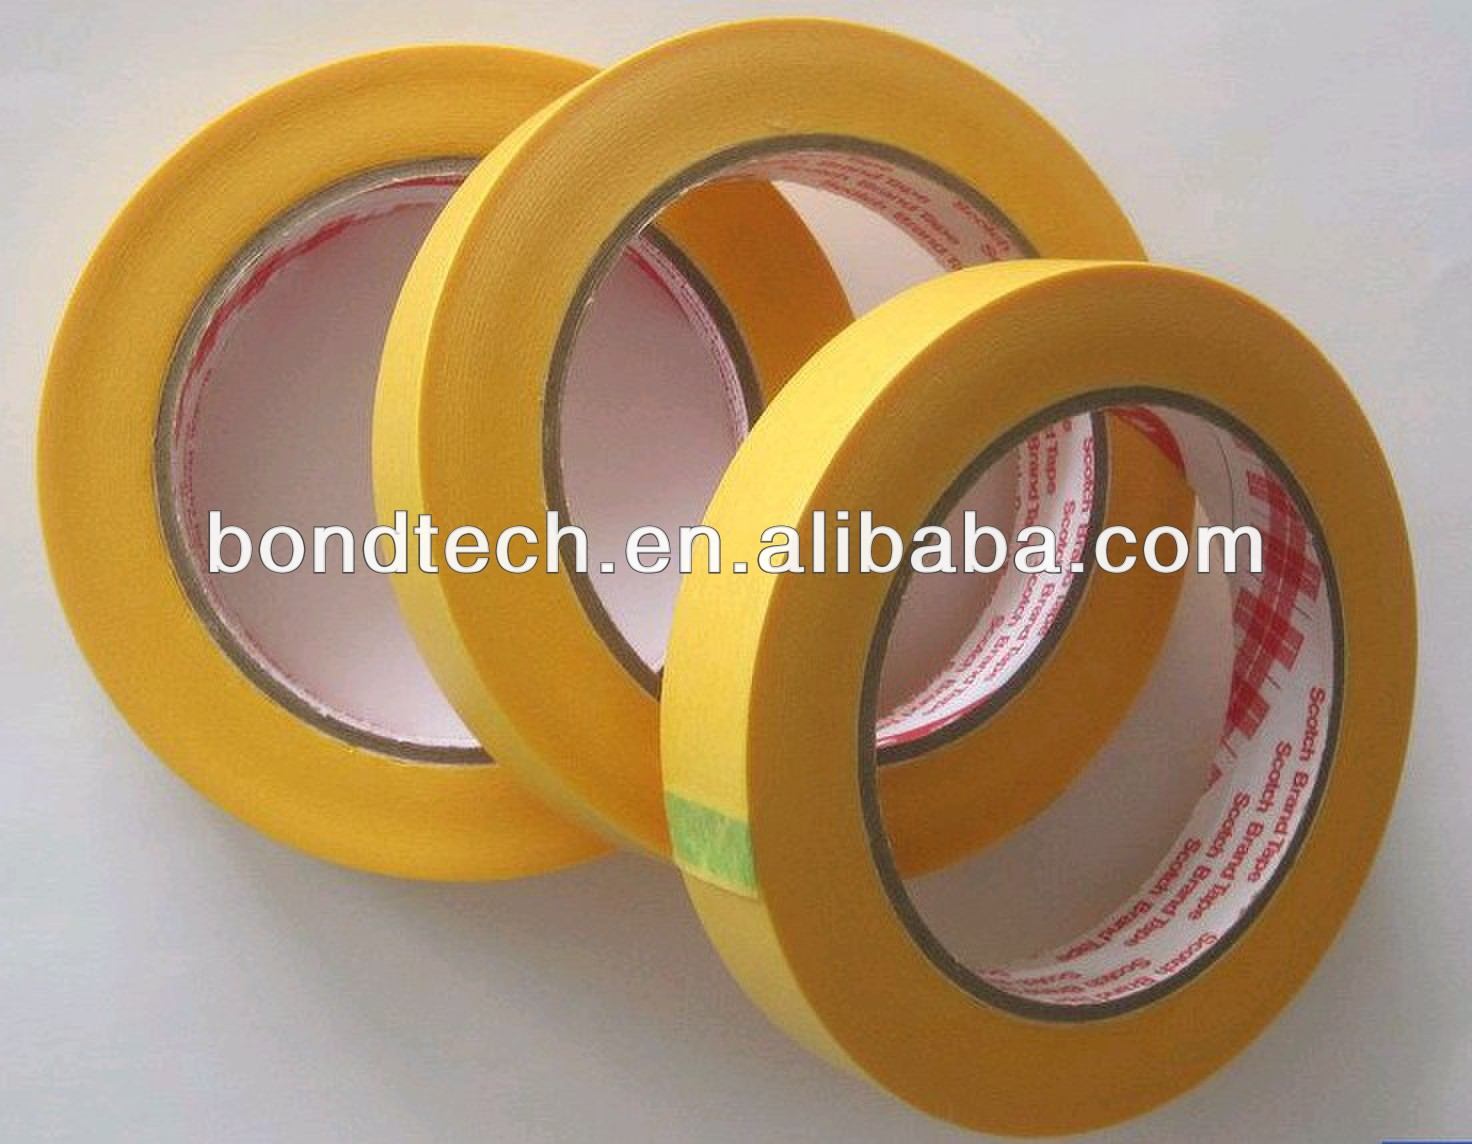 3M 244 High Temperatuer Automotive 3M Masking Tape For Painting 1200mmx50m